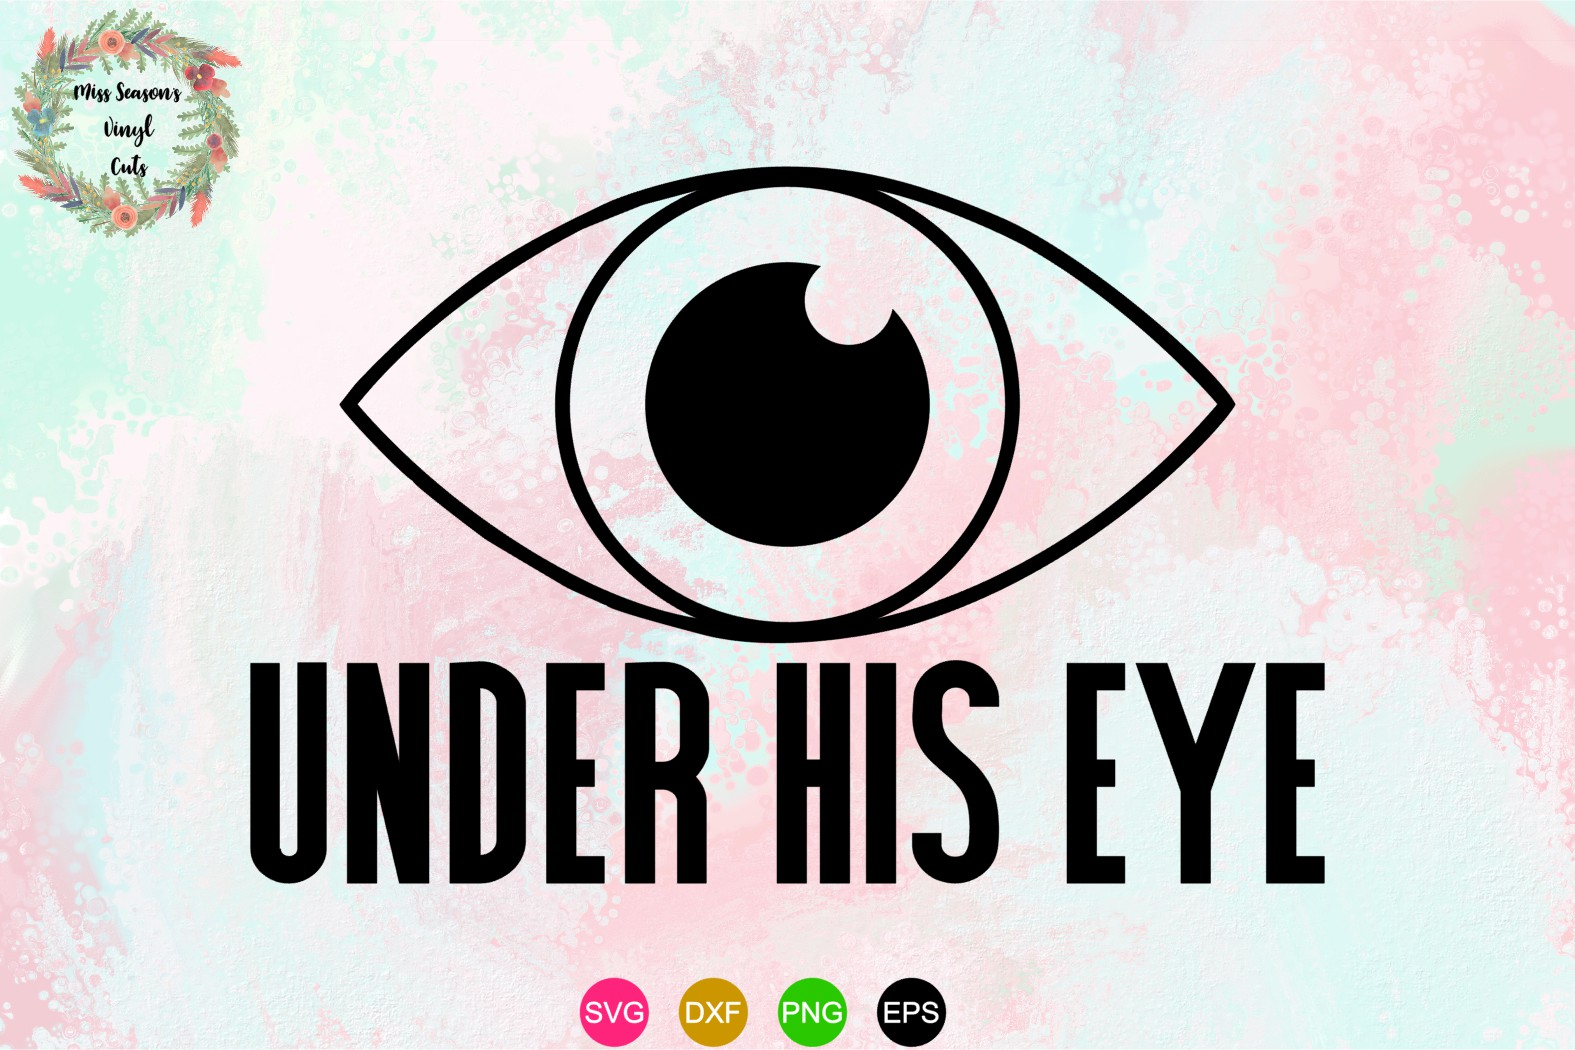 Under His Eye SVG , Dxf, Eps, PNG - Handmaids Tale example image 1